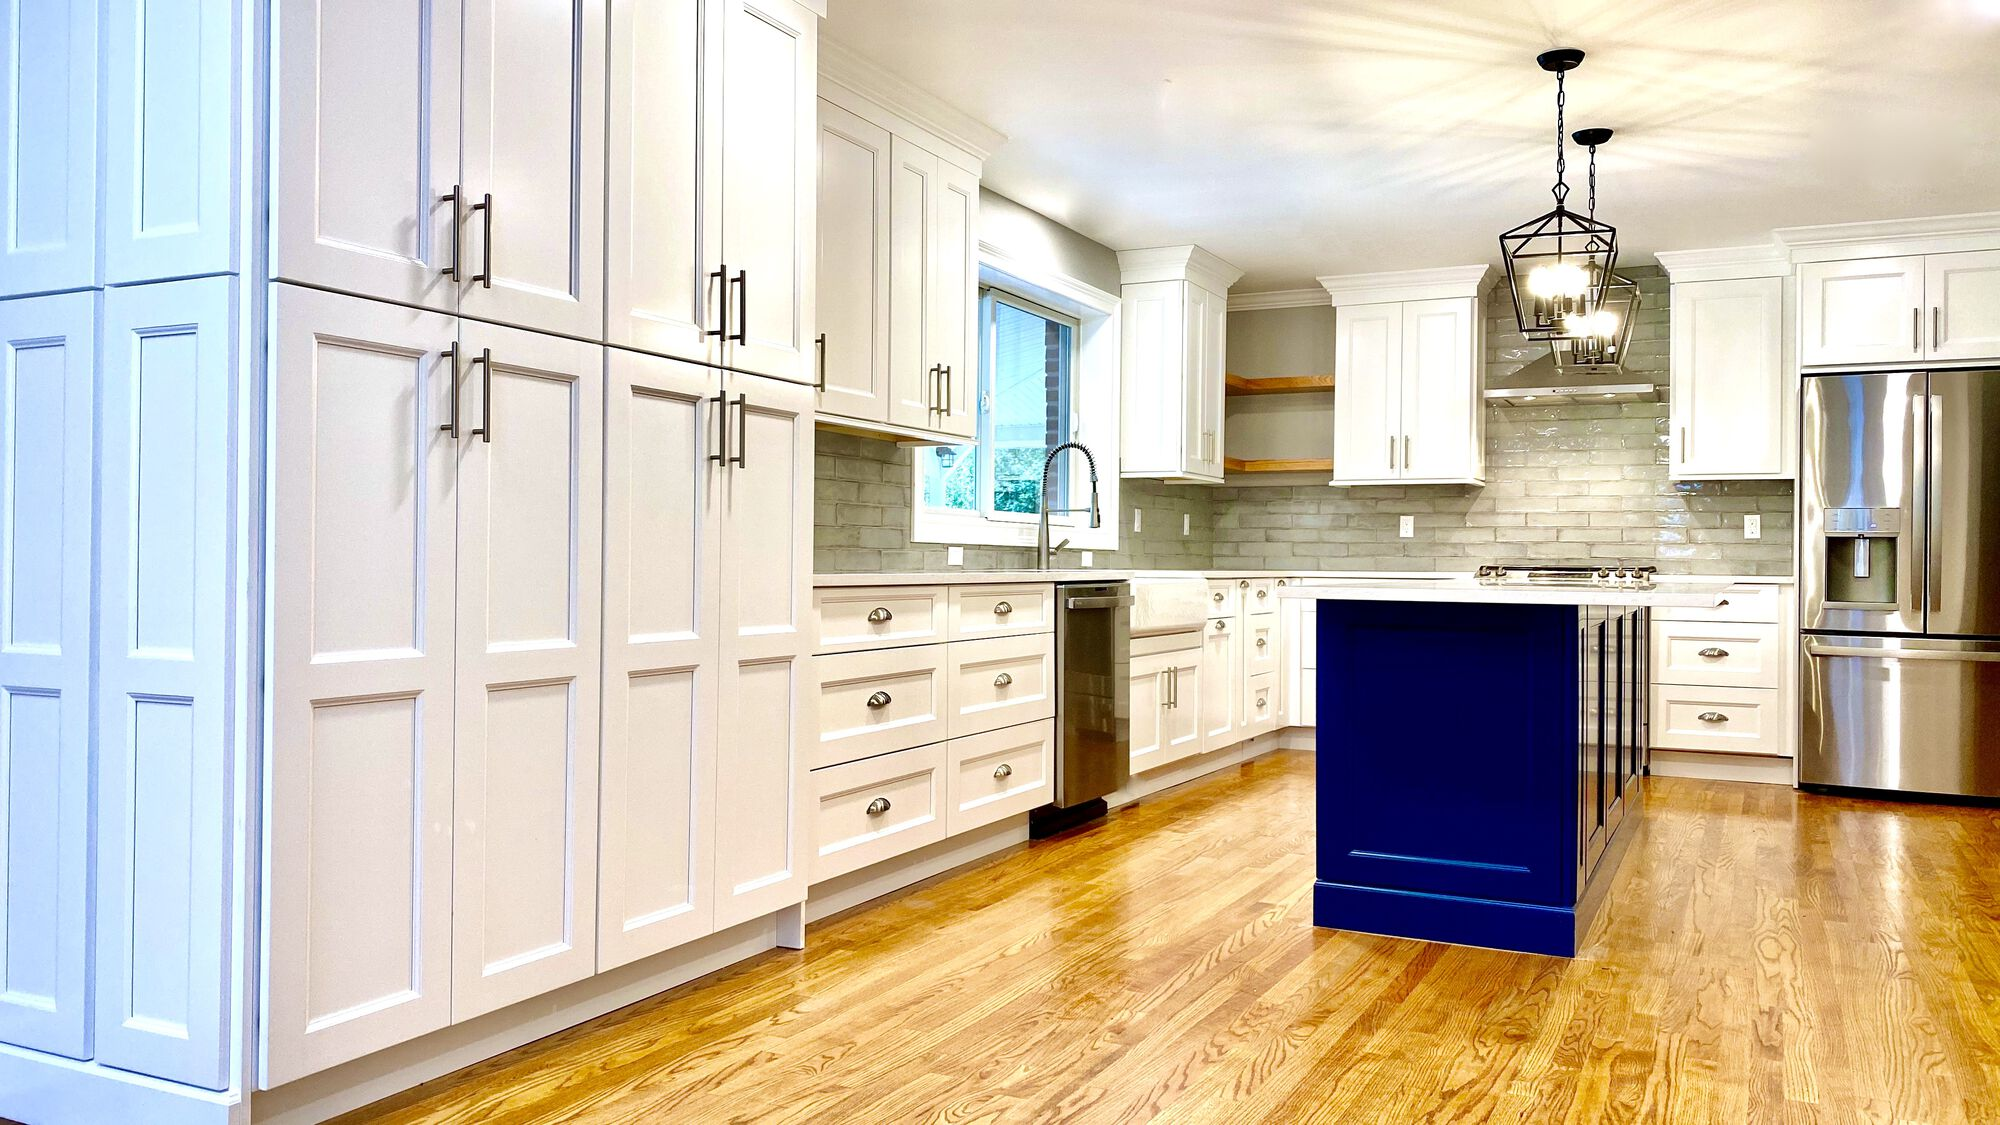 Kitchen Remodel with Wall Removed to Combine Kitchen and Dining, Windows Relocated, Wood Flooring to match existing, Wood Cabinetry with Custom Open Shelving in Bloomfield, Essex County NJ